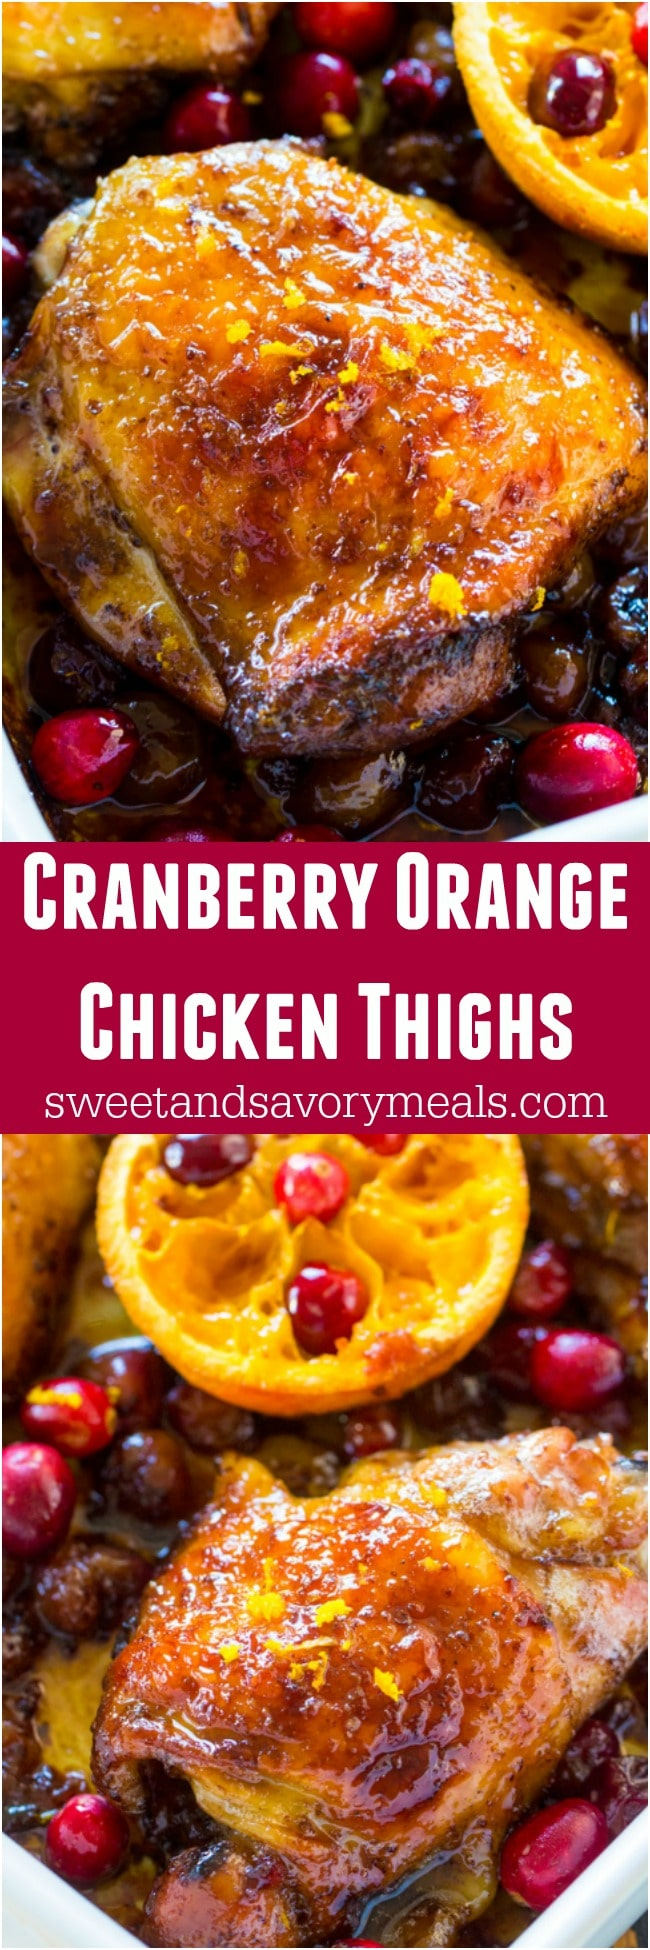 Cranberry Orange Chicken is the perfect, seasonal fall meal made with juicy, tart cranberries and fresh orange juice and zest.